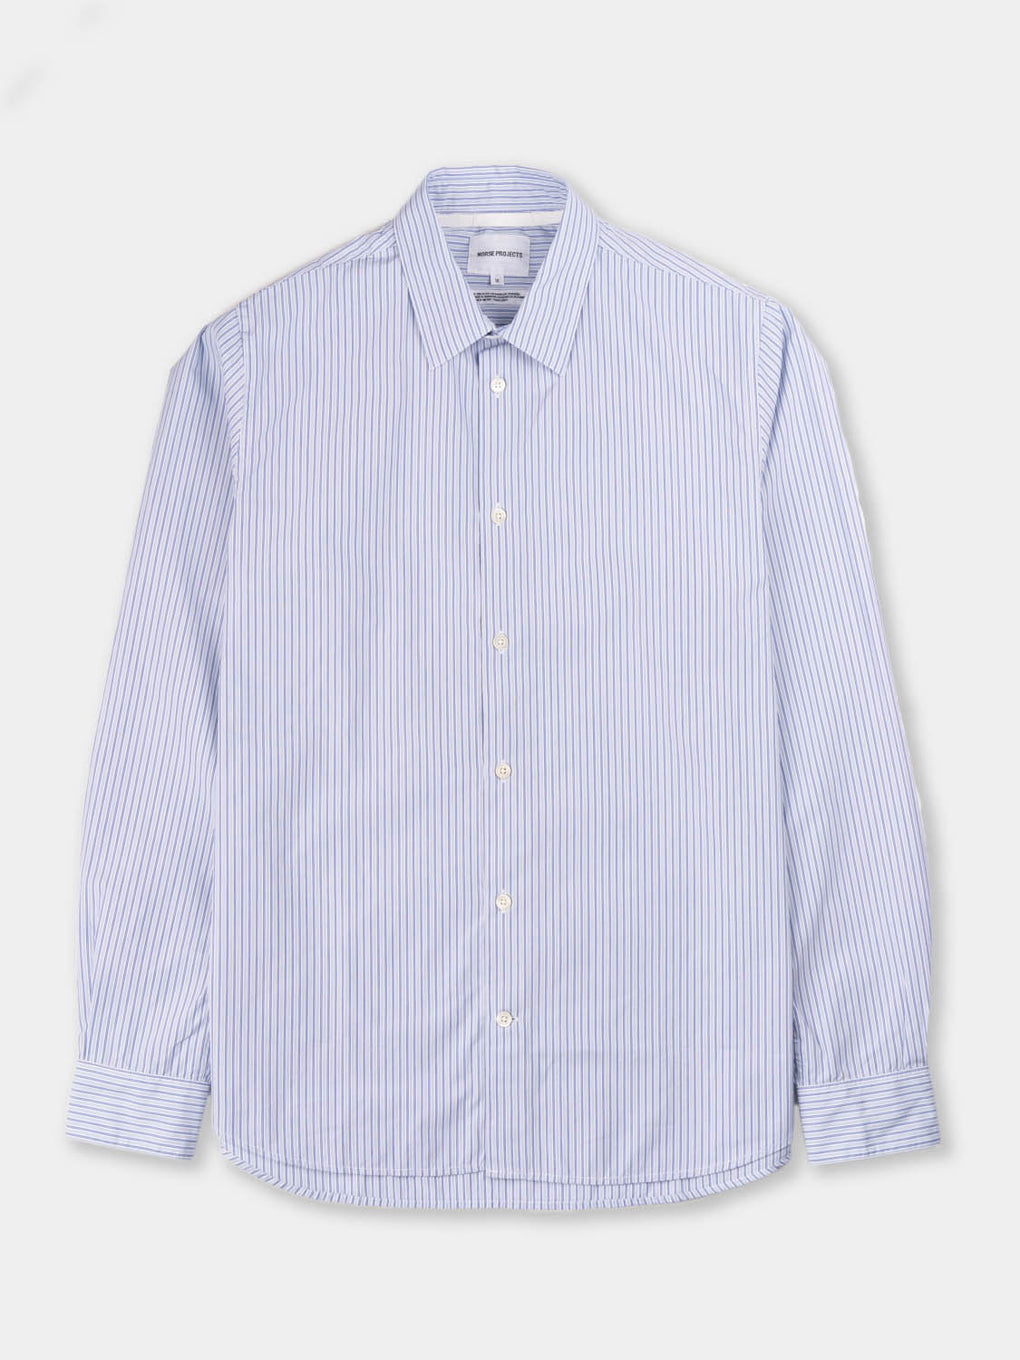 Mens dress shirt, oxford button down, Italian cotton, Blue and white stripe, Norse Projects